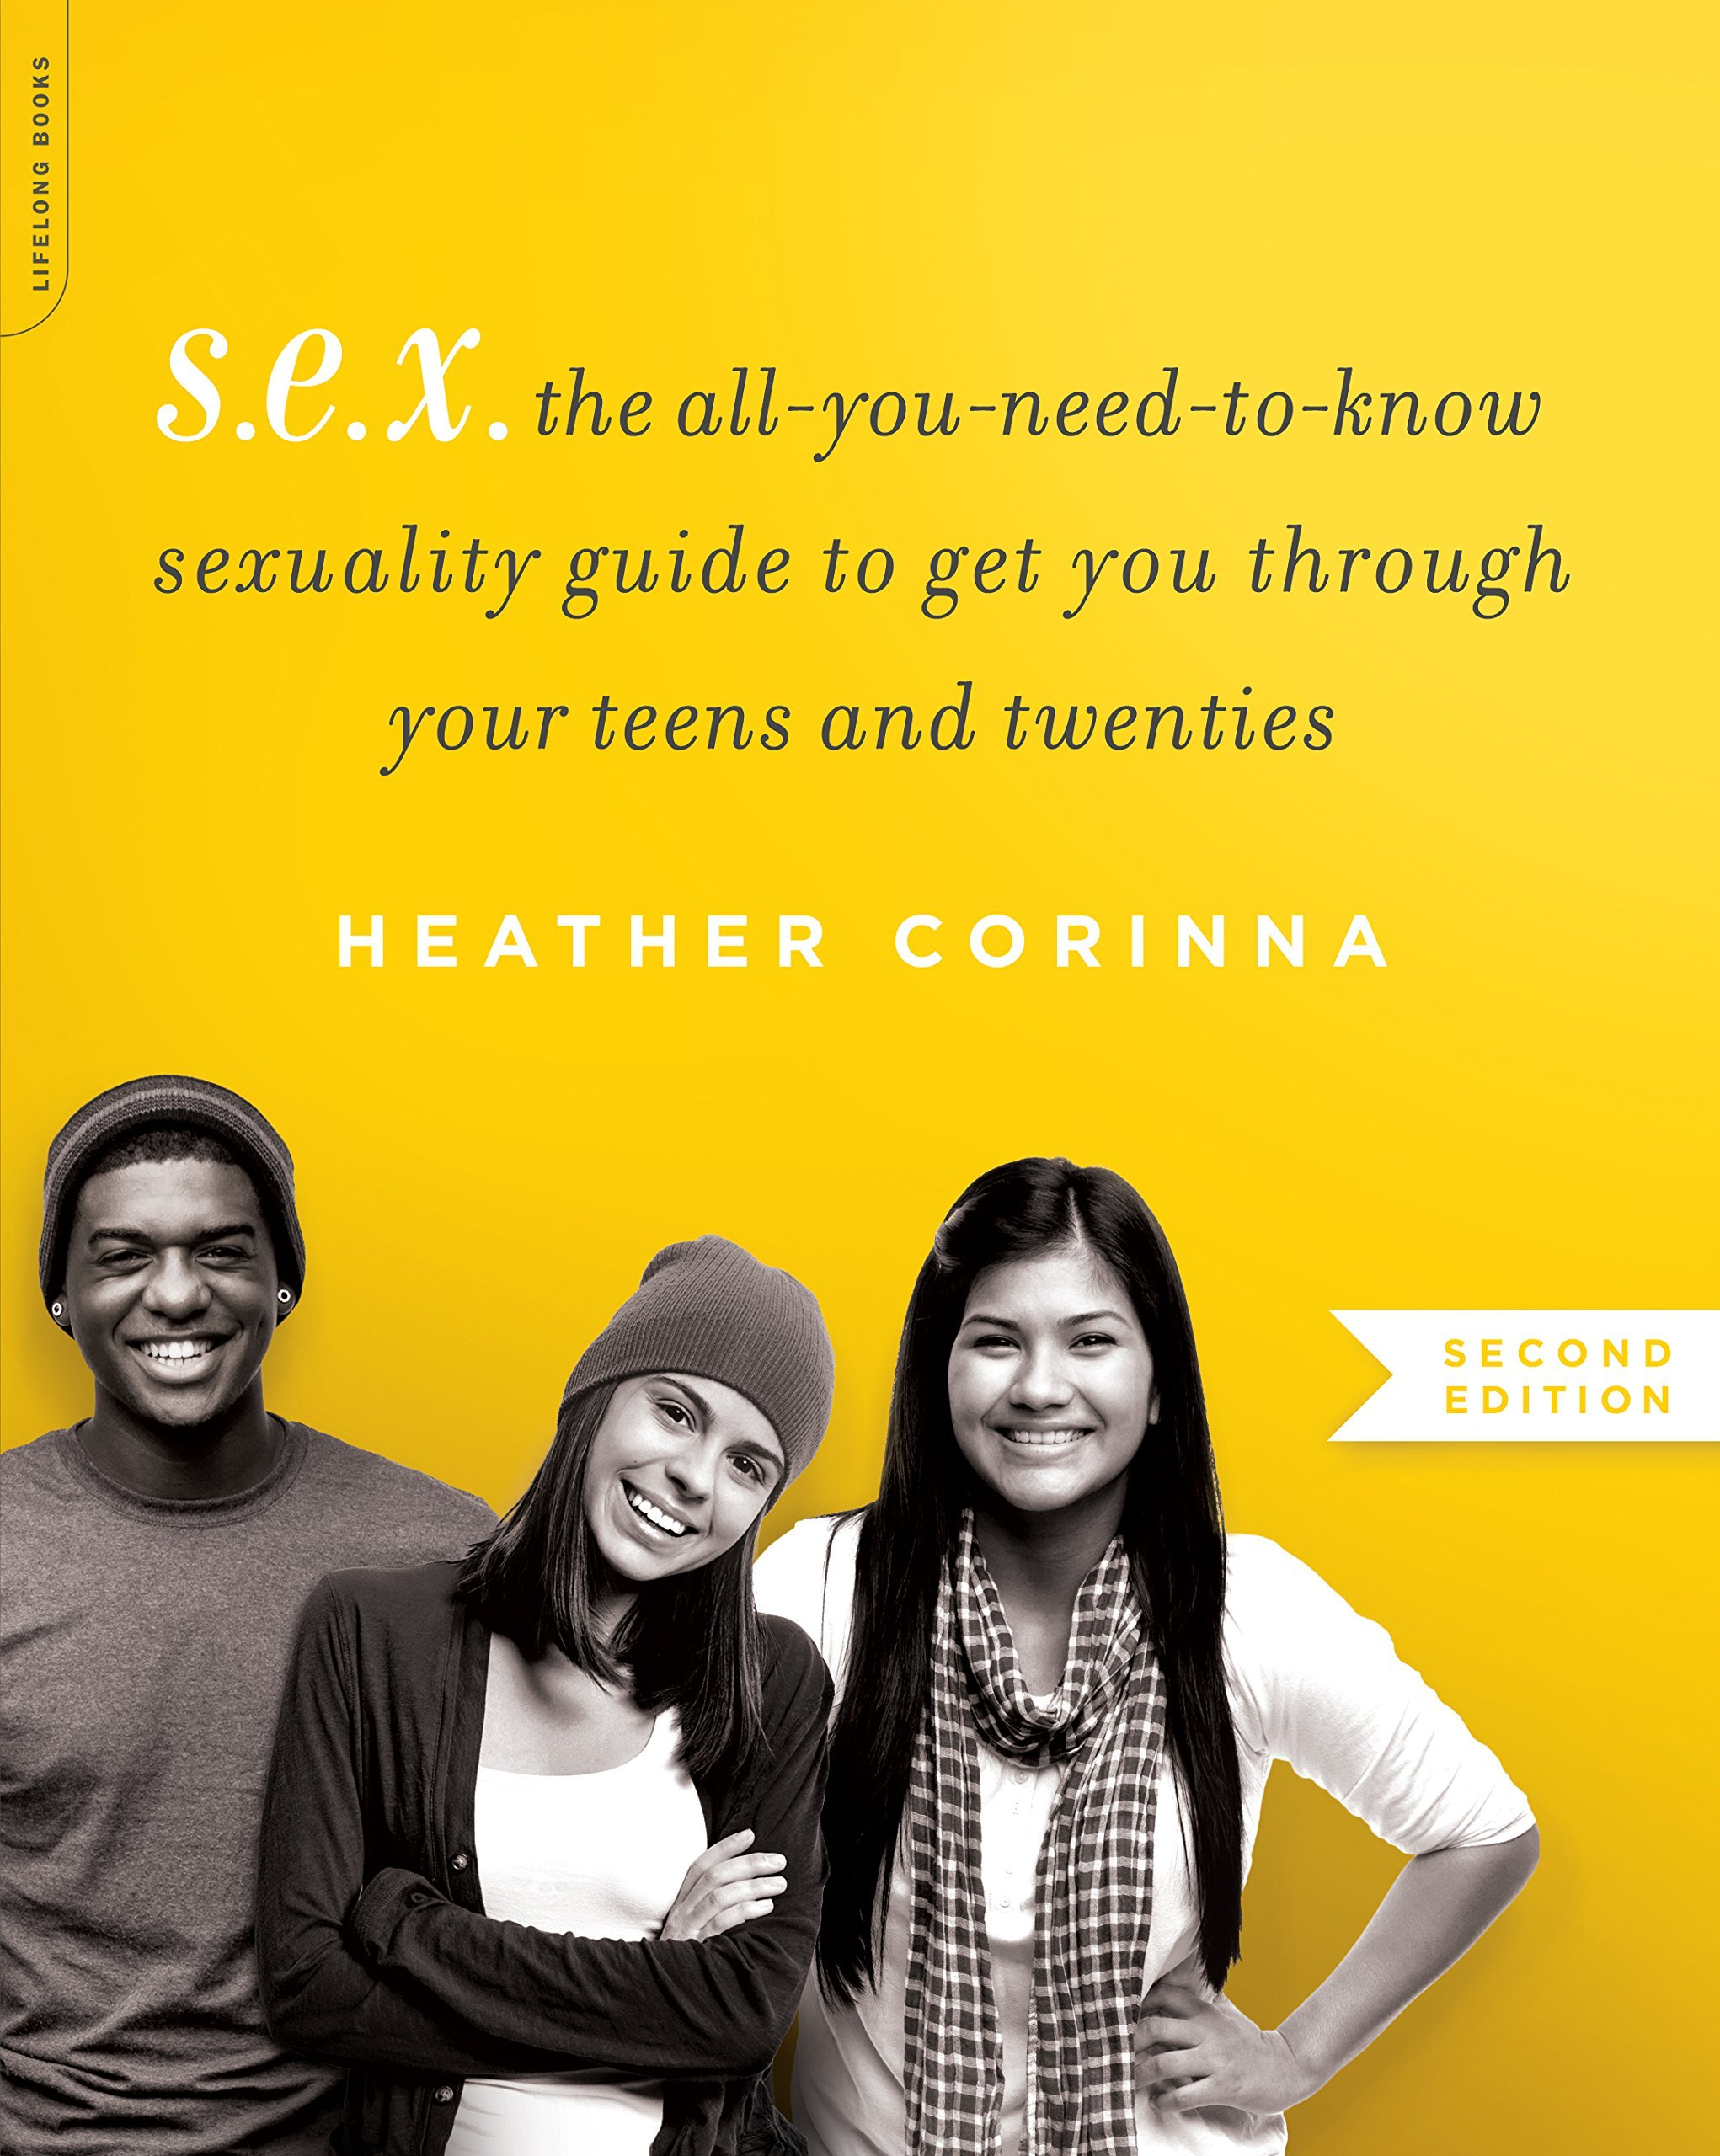 S.E.X., second edition: The All-You-Need-To-Know Sexuality Guide to Get You Through Your Teens and Twenties by Da Capo Lifelong